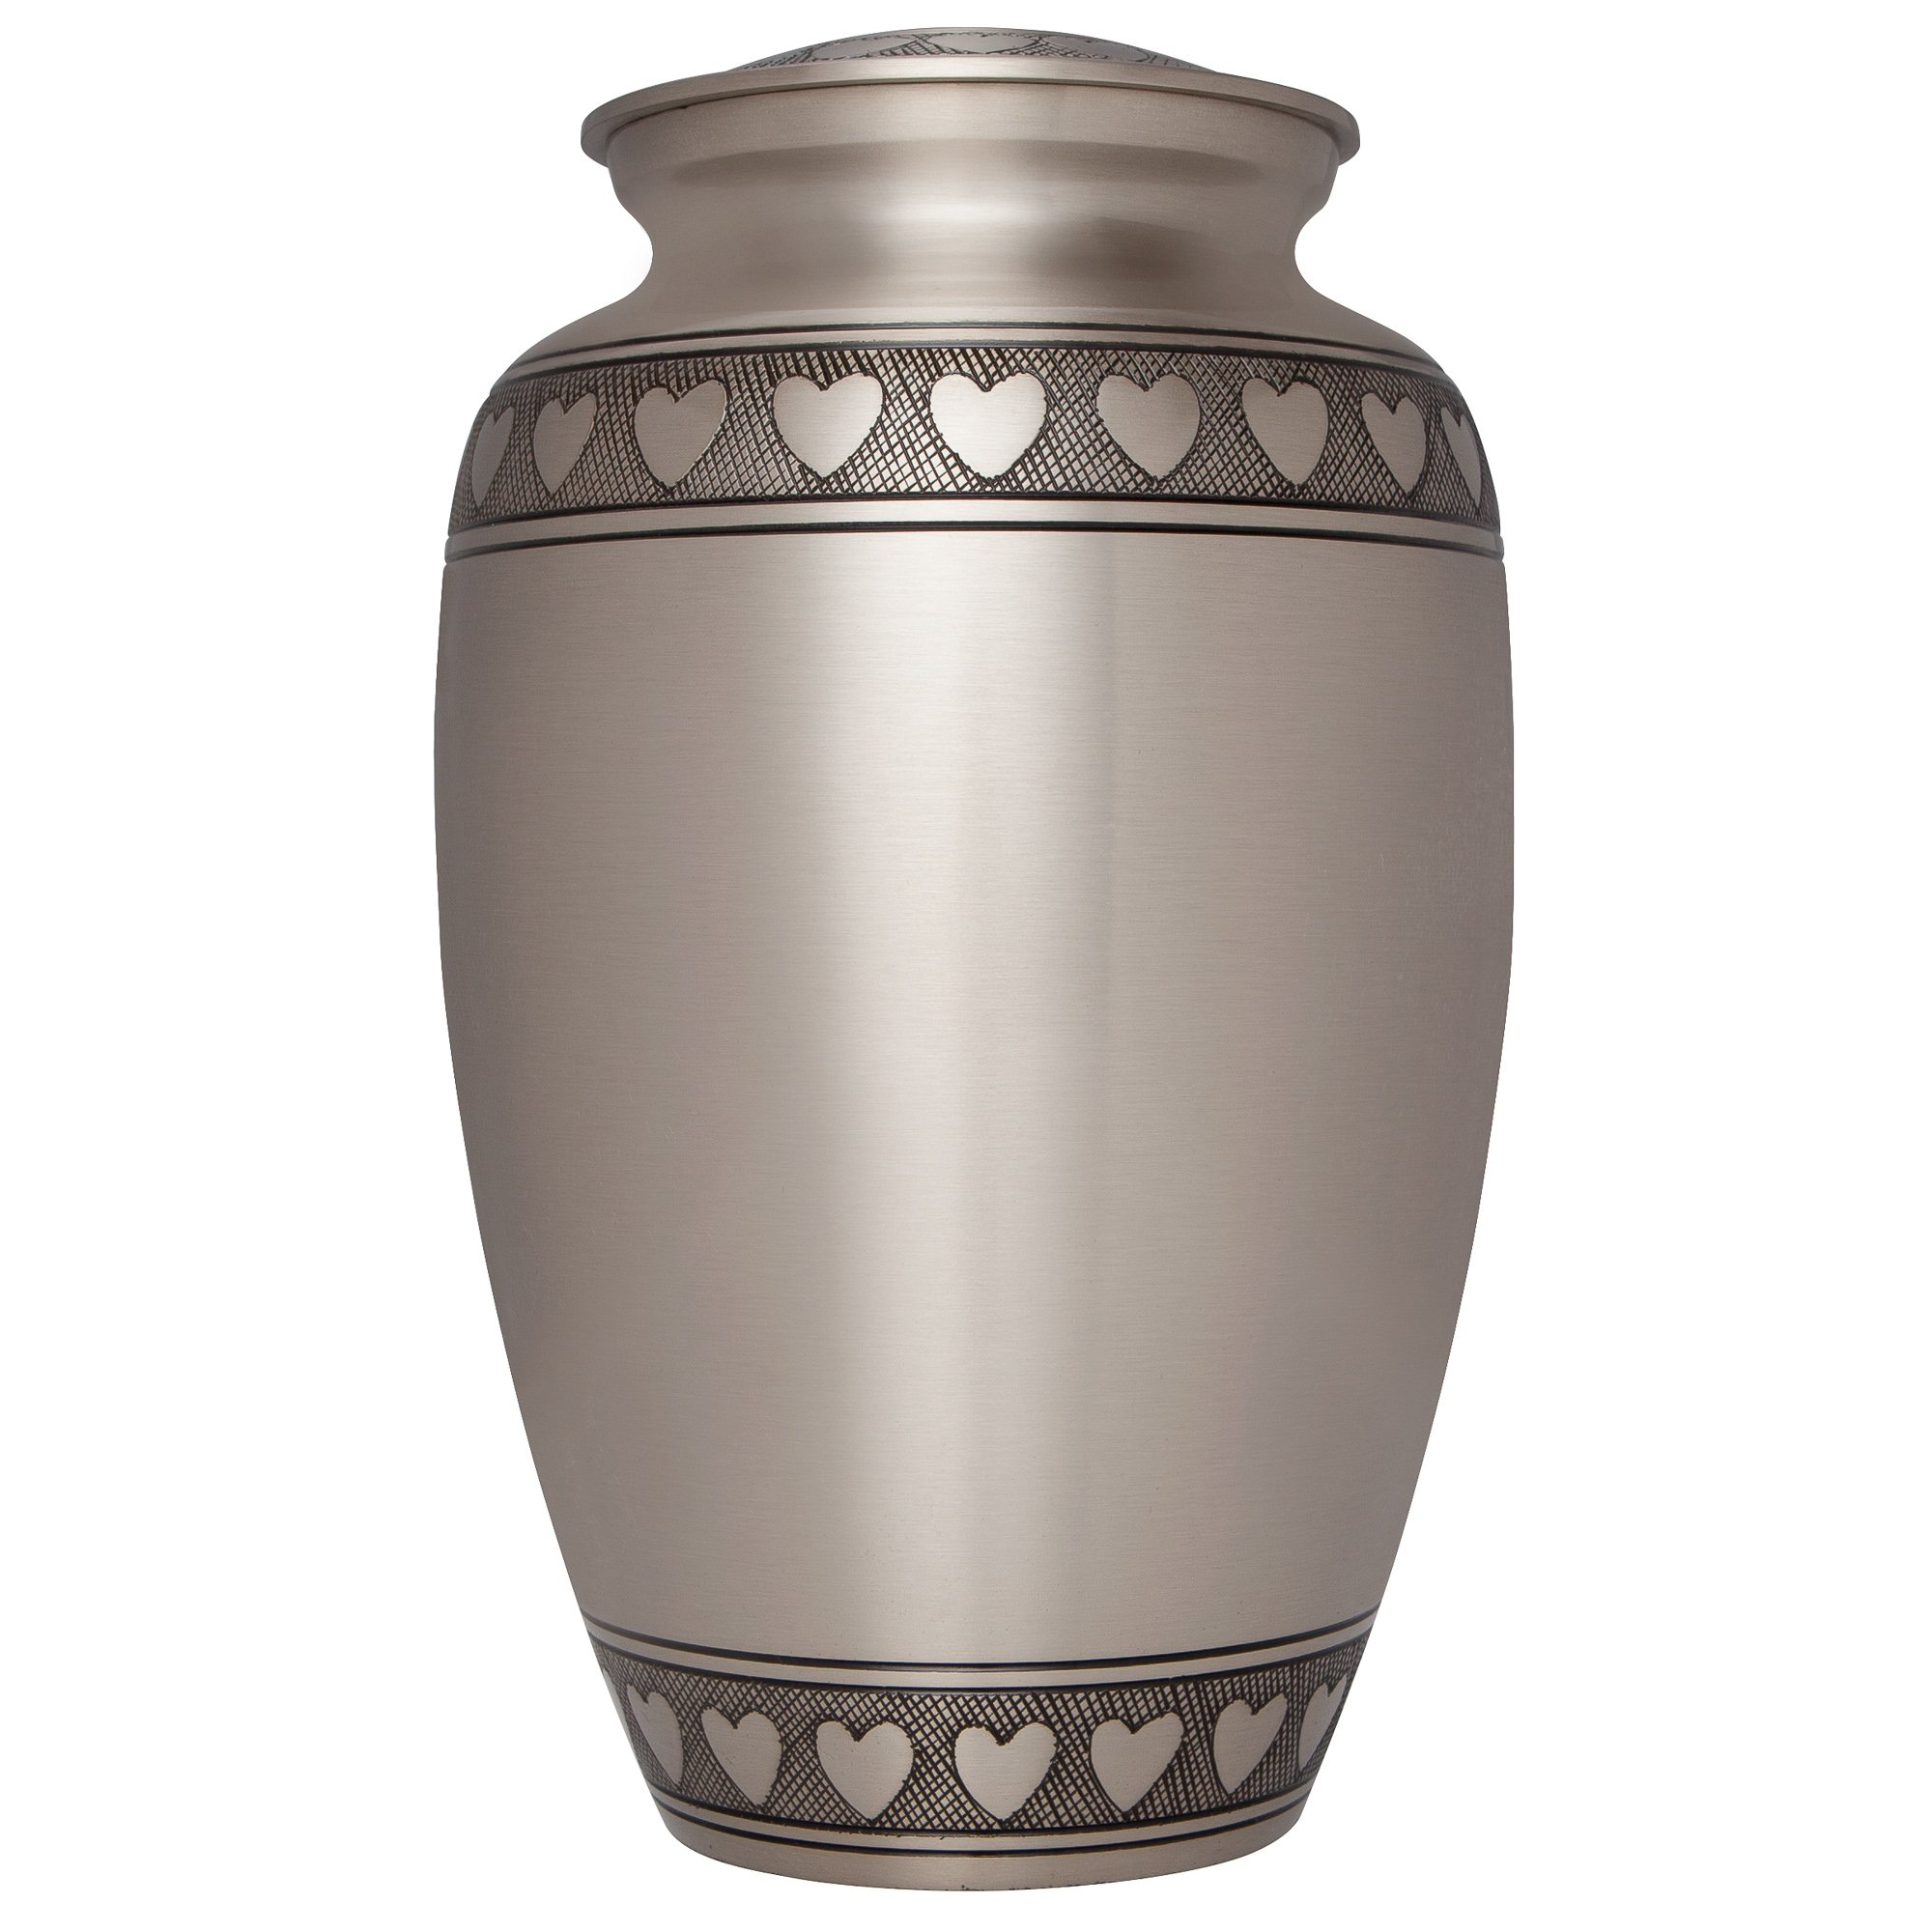 Liliane Memorials Heart Silver Funeral Urn by Cremation Urn for Human Ashes - Hand Made in Brass - Suitable for Cemetery Burial or Niche - Large Size fits remains of Adults up to 200 lbs- Corazones